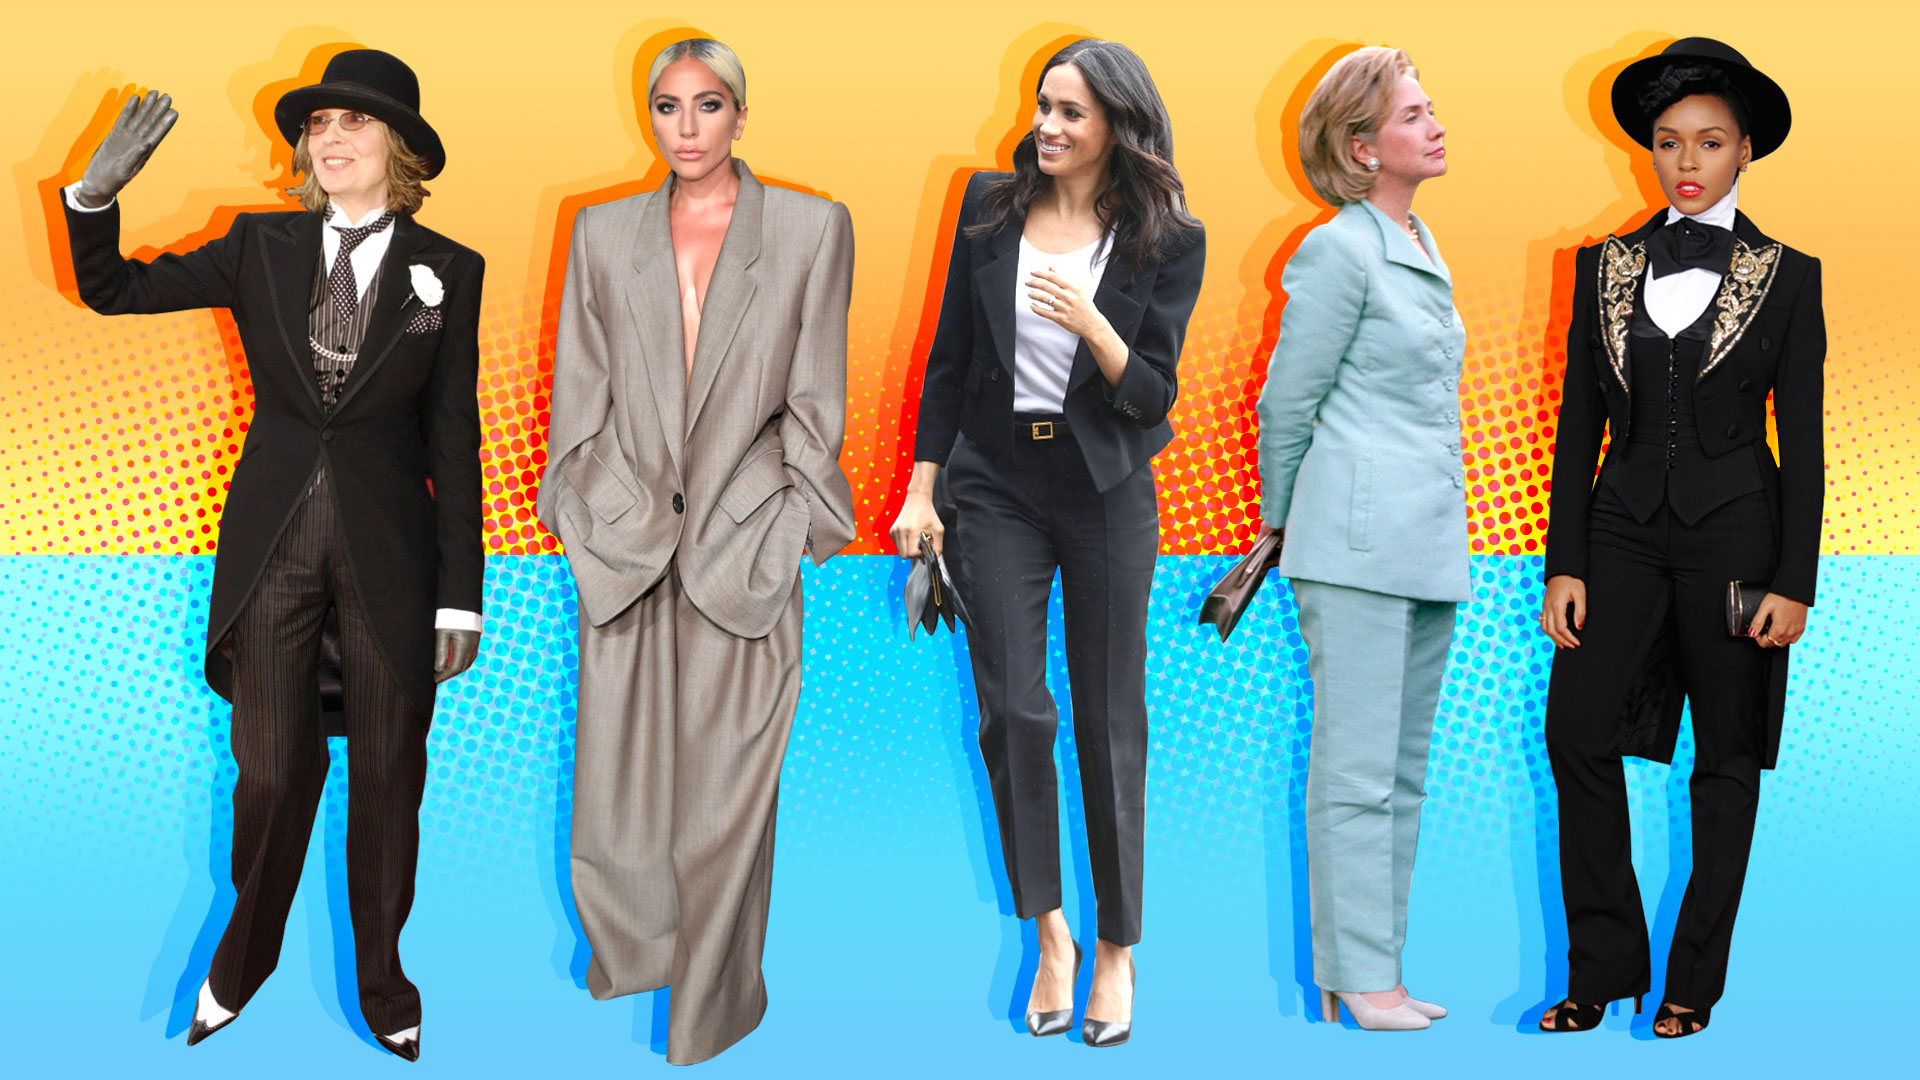 celeb womens suits female celebrities in suits 1920x1080 download hd wallpaper wallpapertip celeb womens suits female celebrities